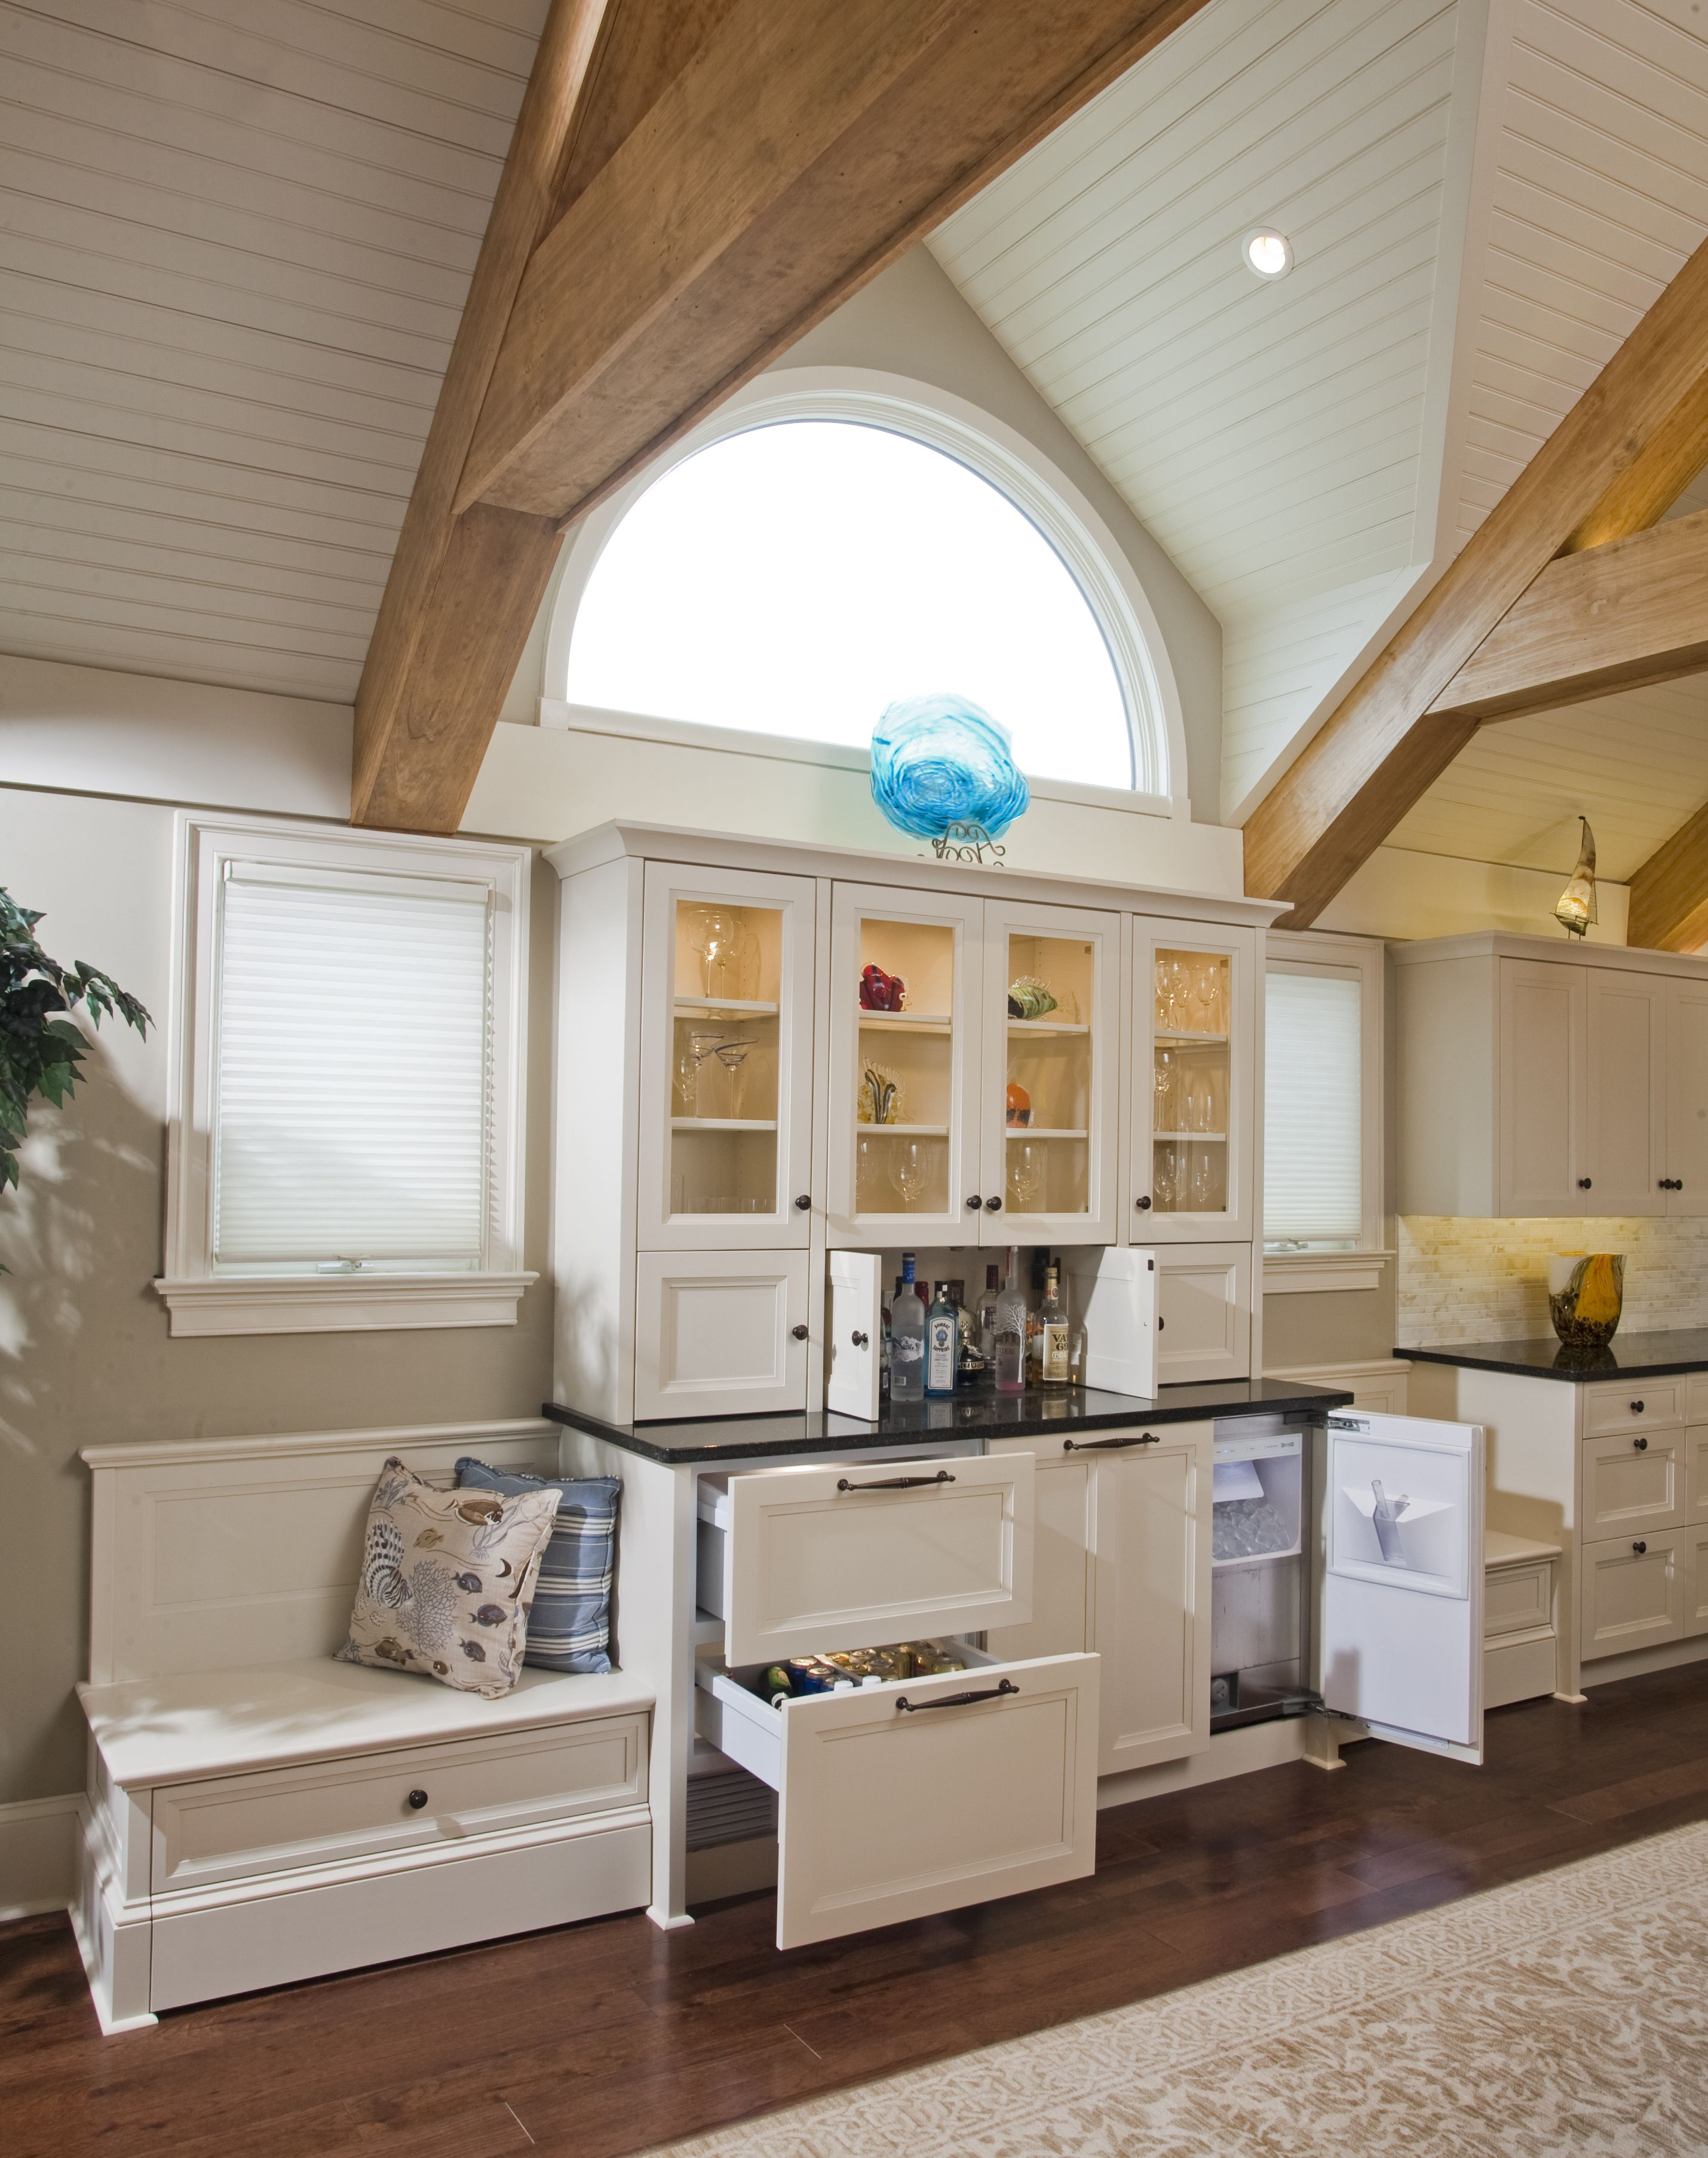 Surprise China Cabinet Is A Functional Bar Beverage Center Cabinet Cabinetry Kitchen Cabinets